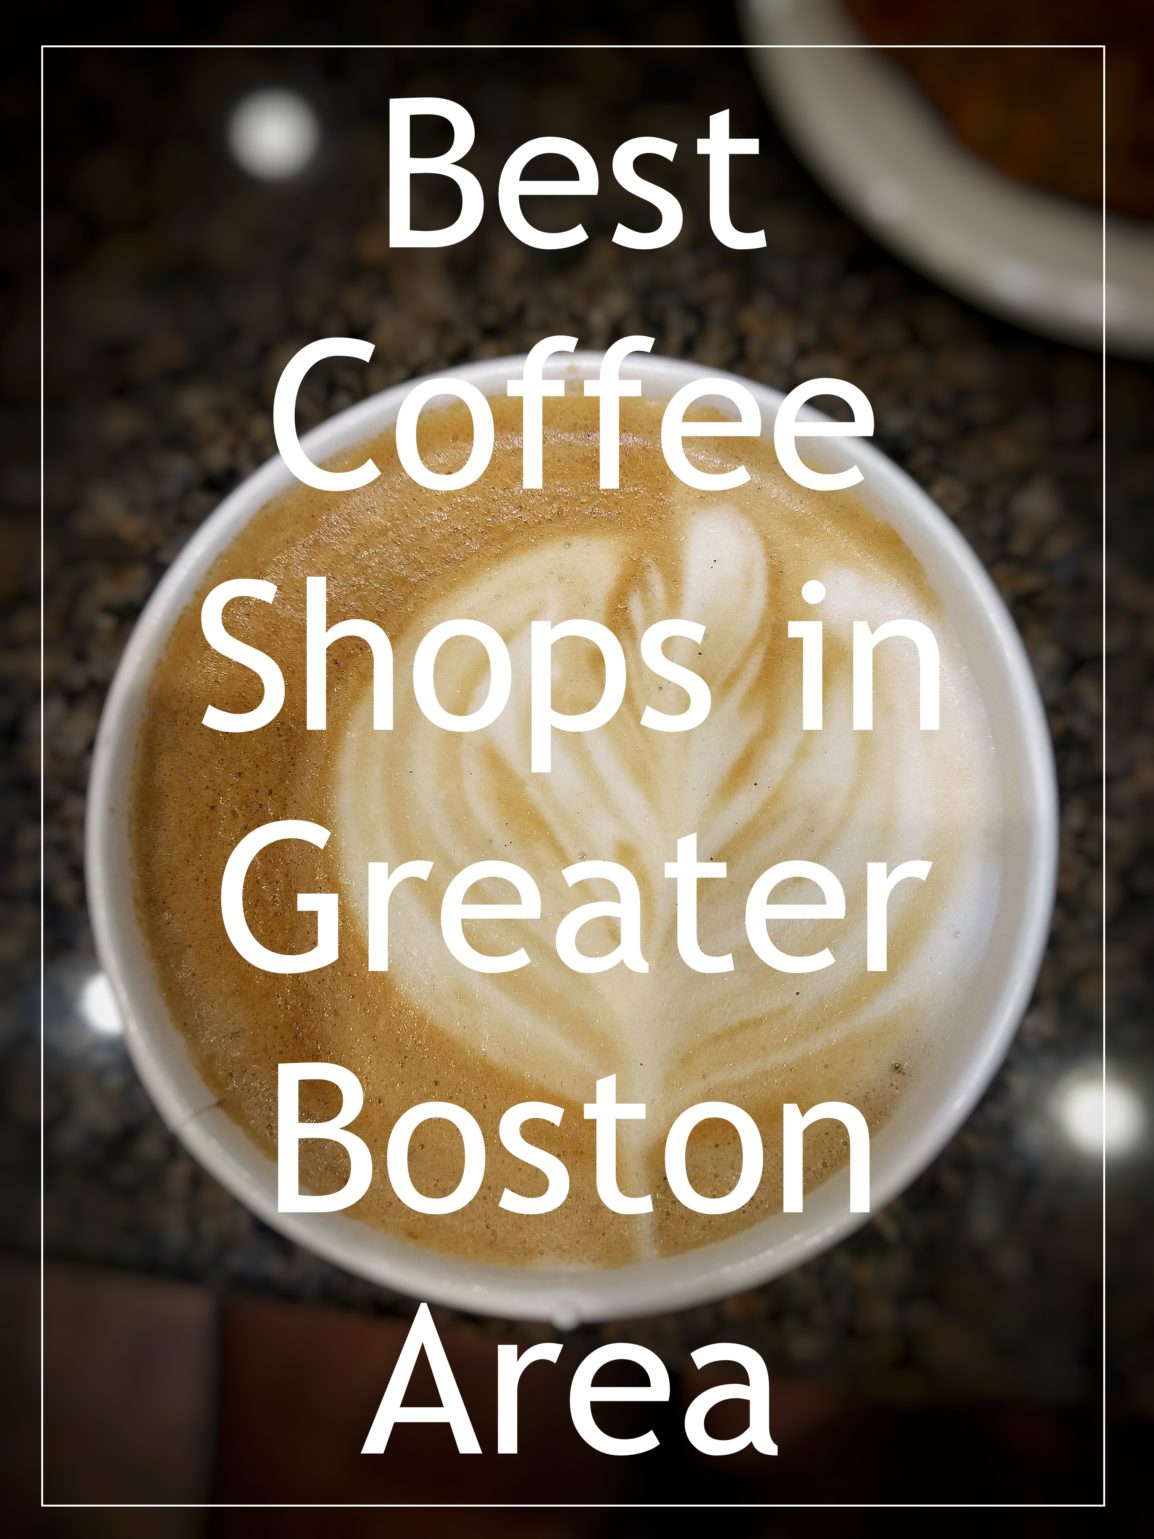 Best Coffee Shops: Boston